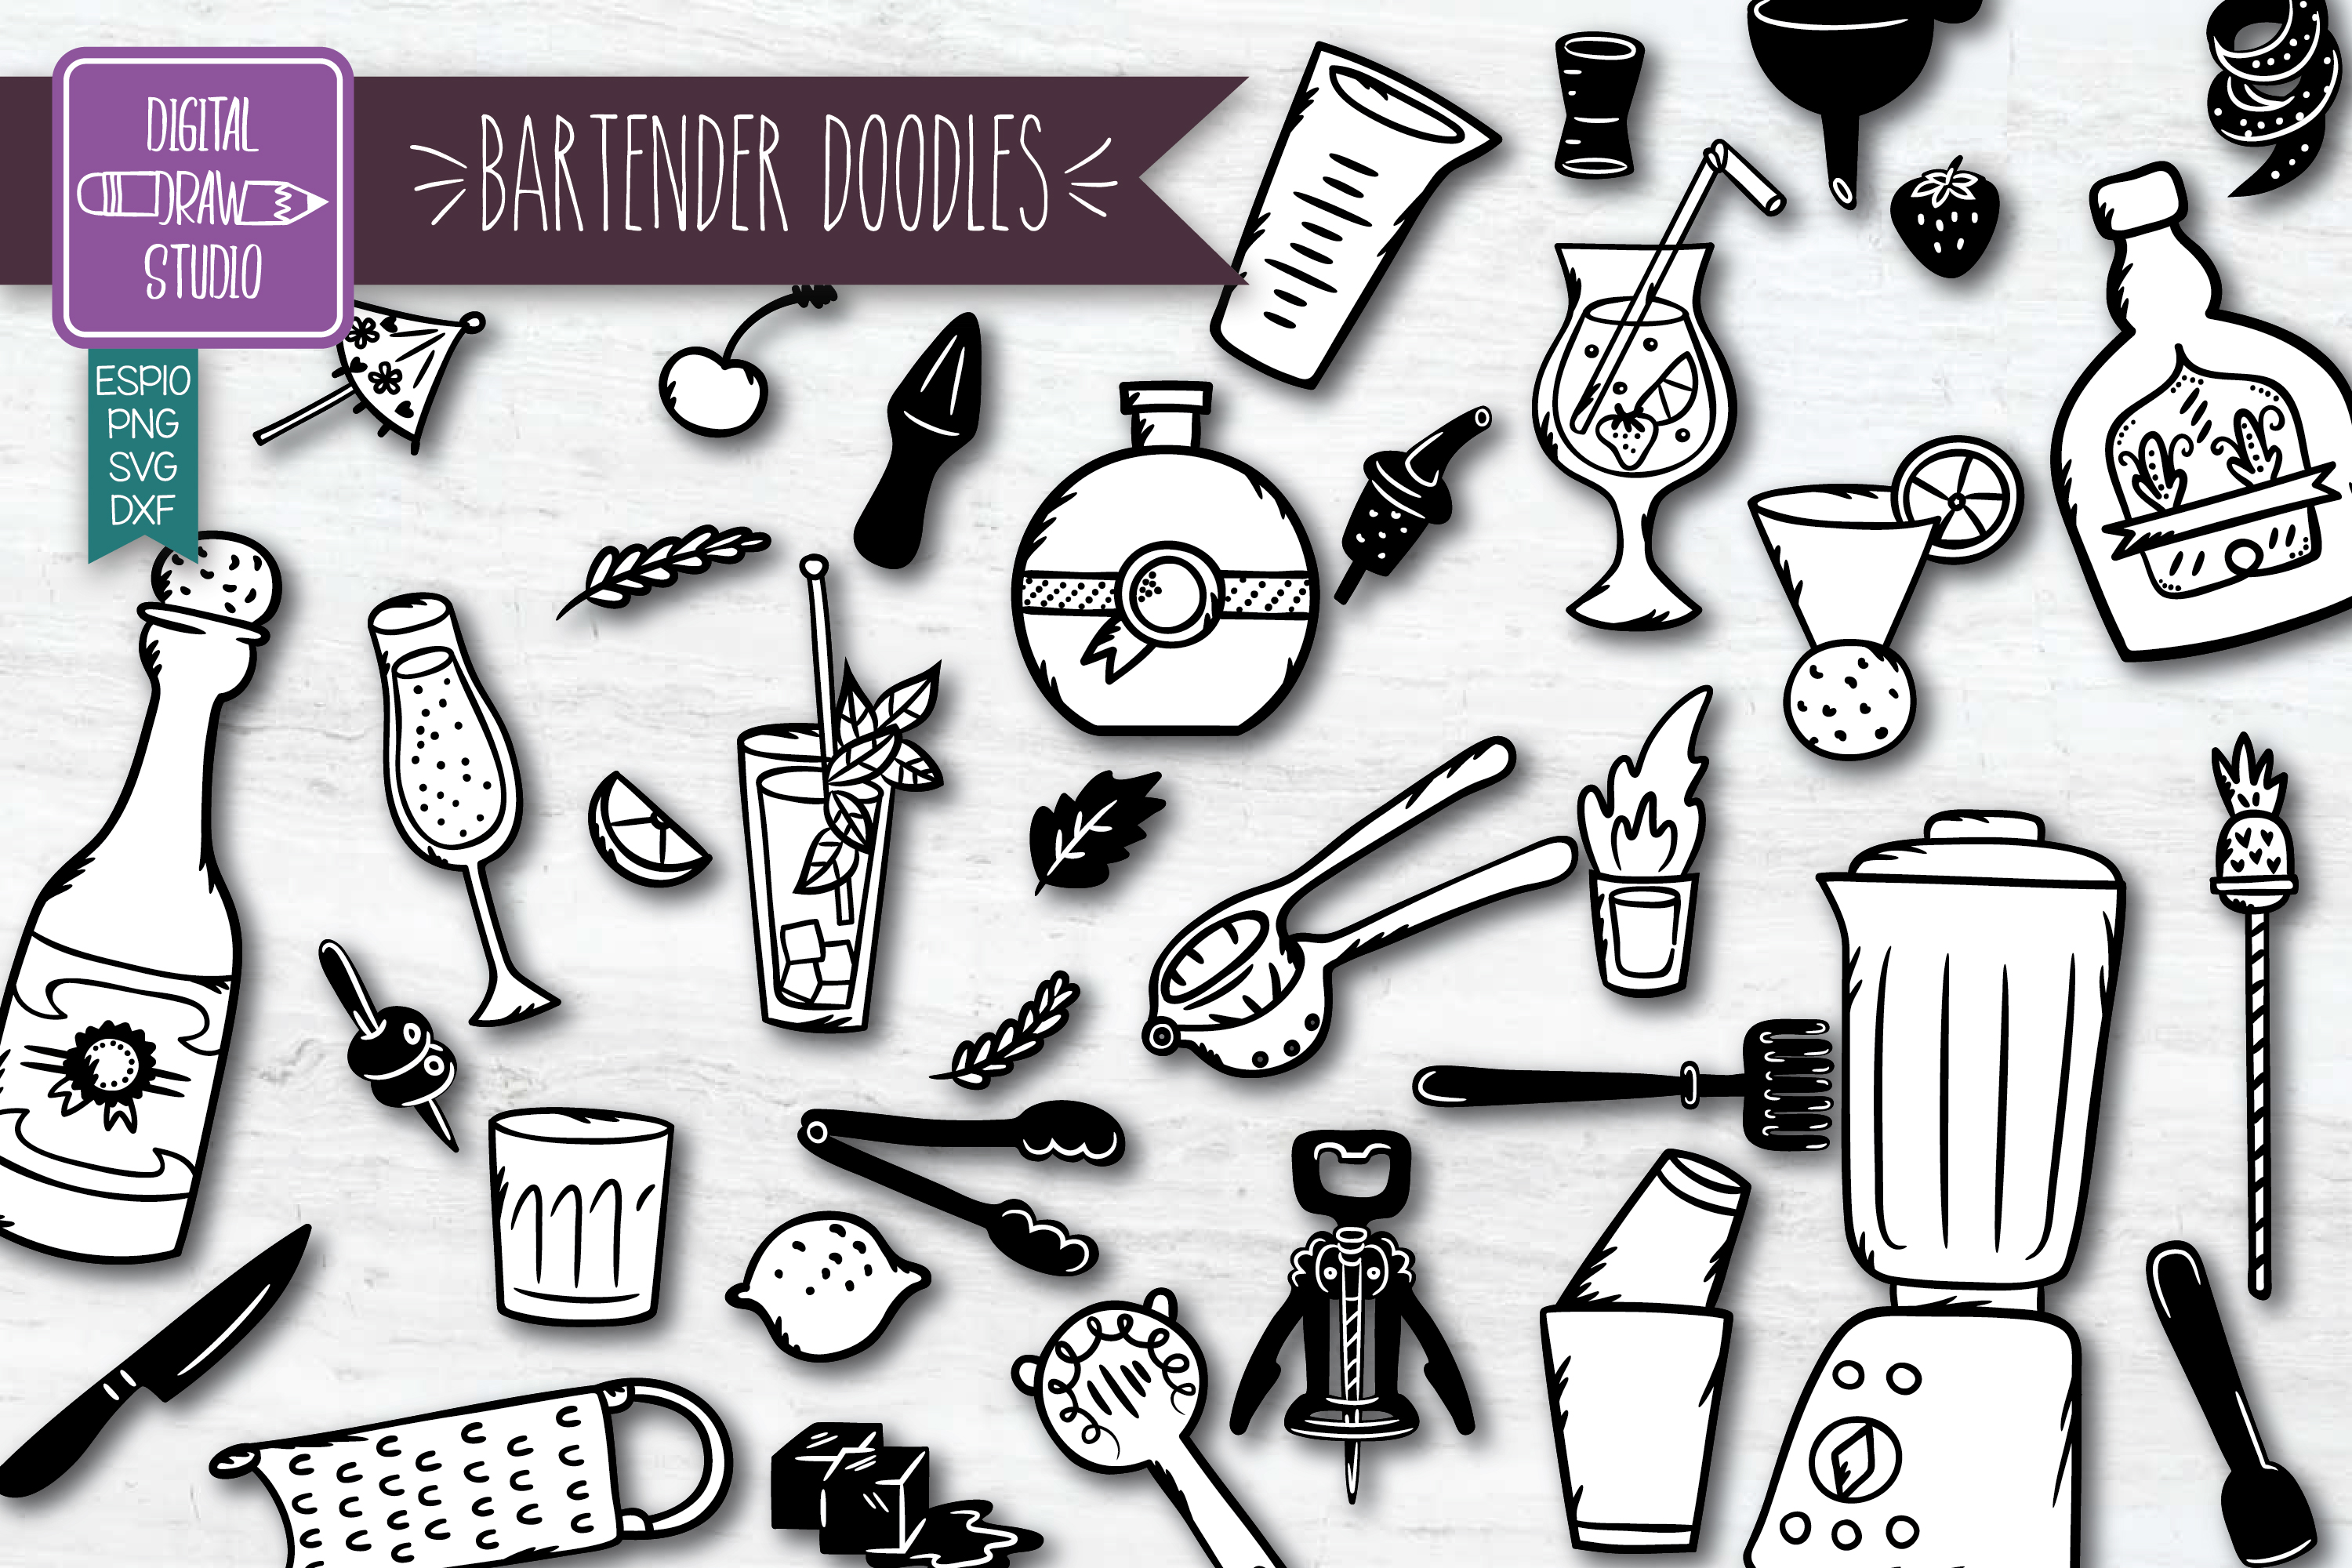 Download Free Hand Drawn Bartender Doodles Graphic By Carmela Giordano for Cricut Explore, Silhouette and other cutting machines.